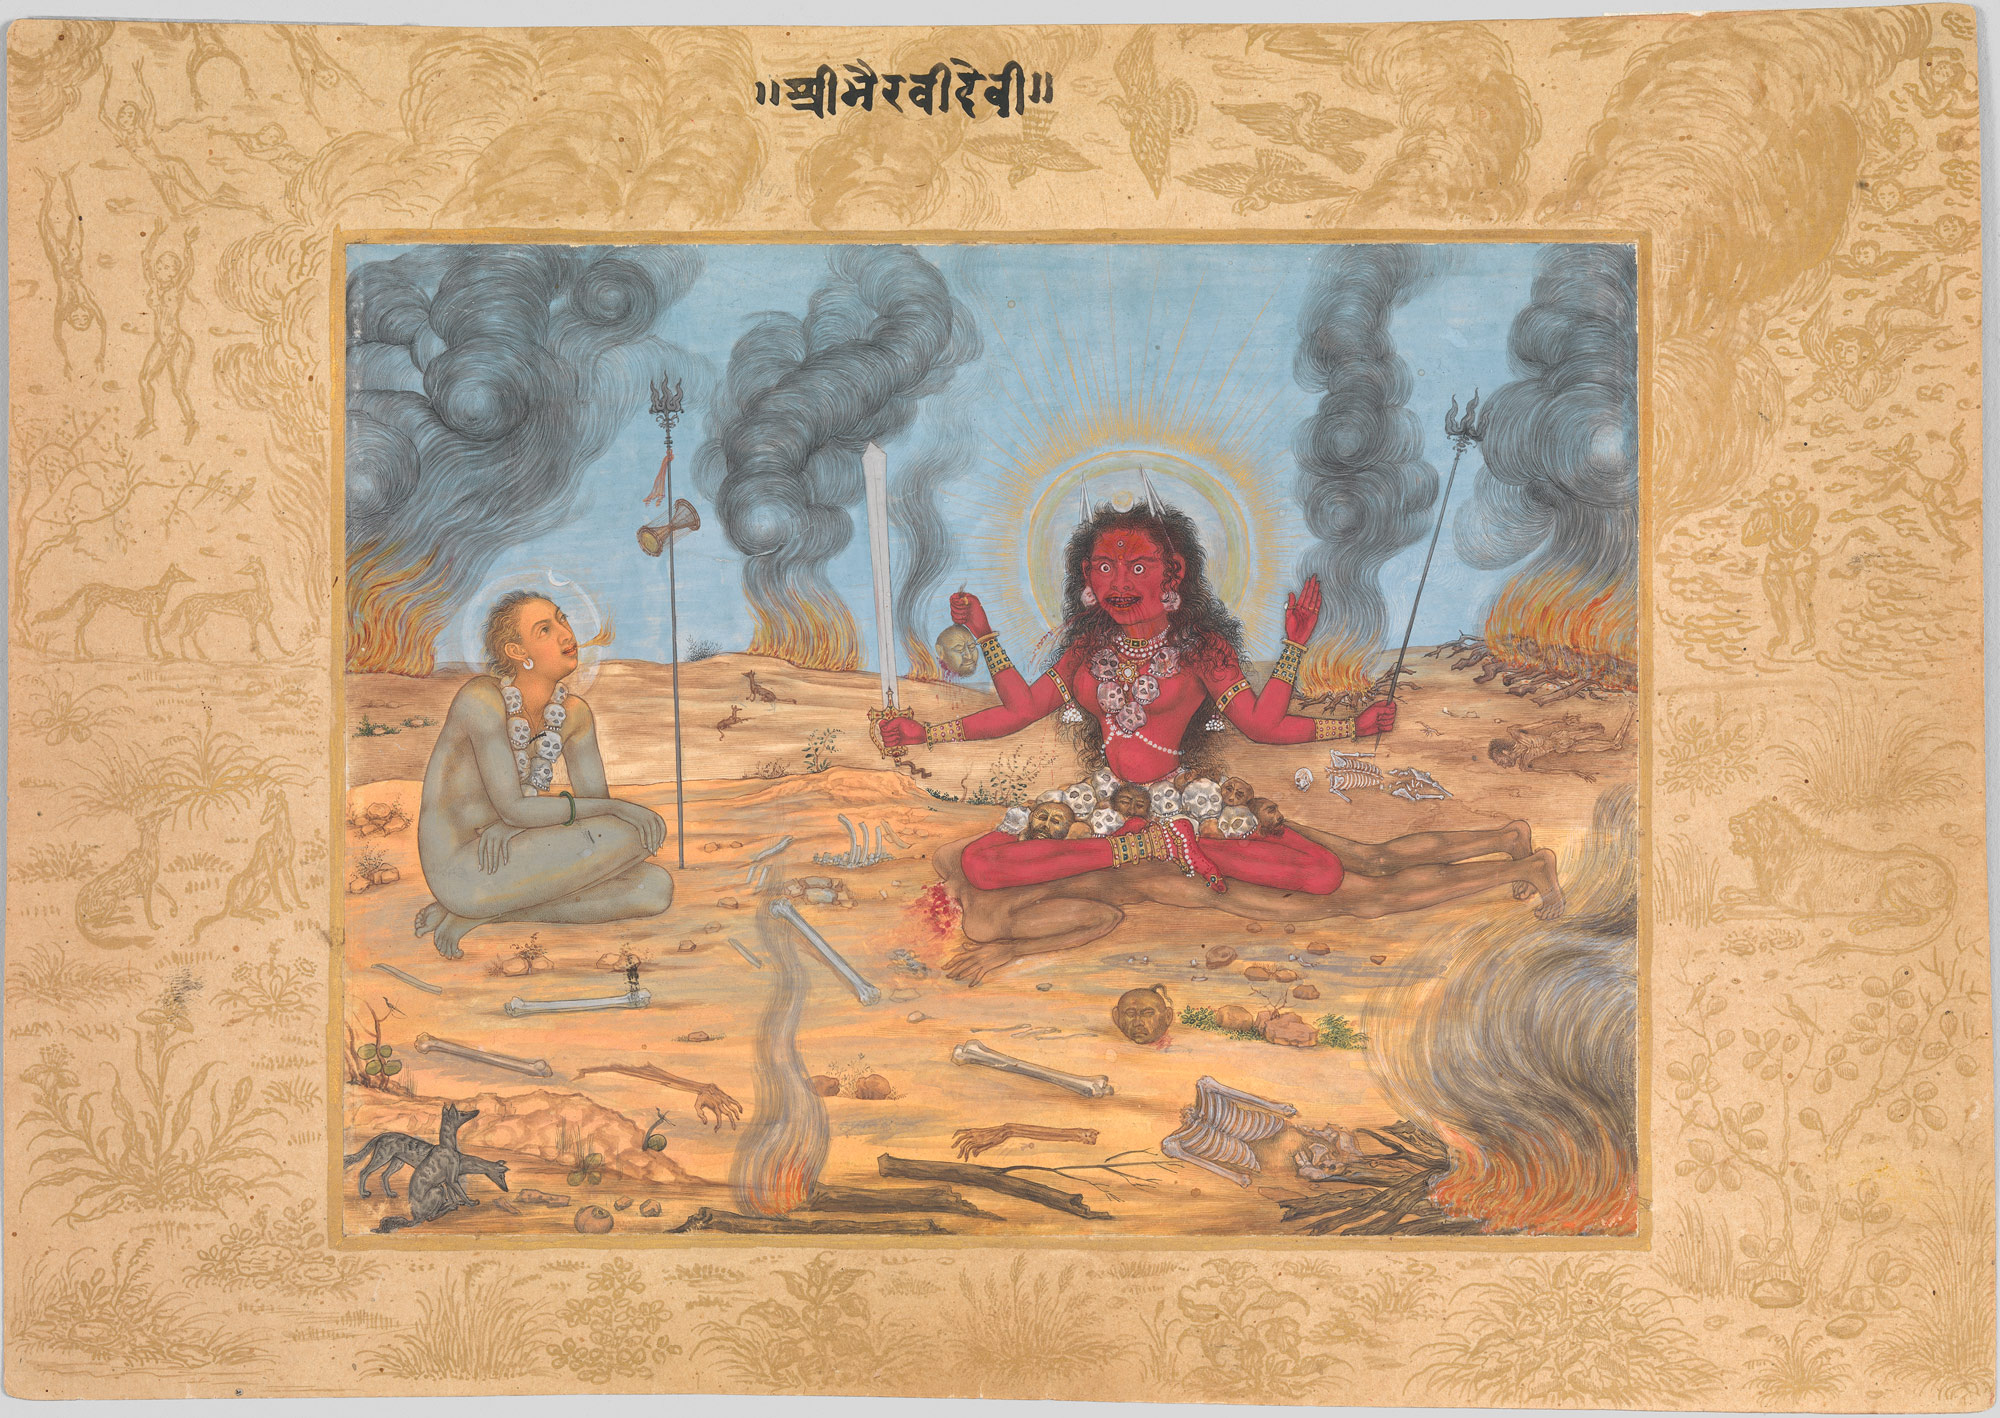 attributed to Payag - The Goddess Bhairavi Devi with Shiva